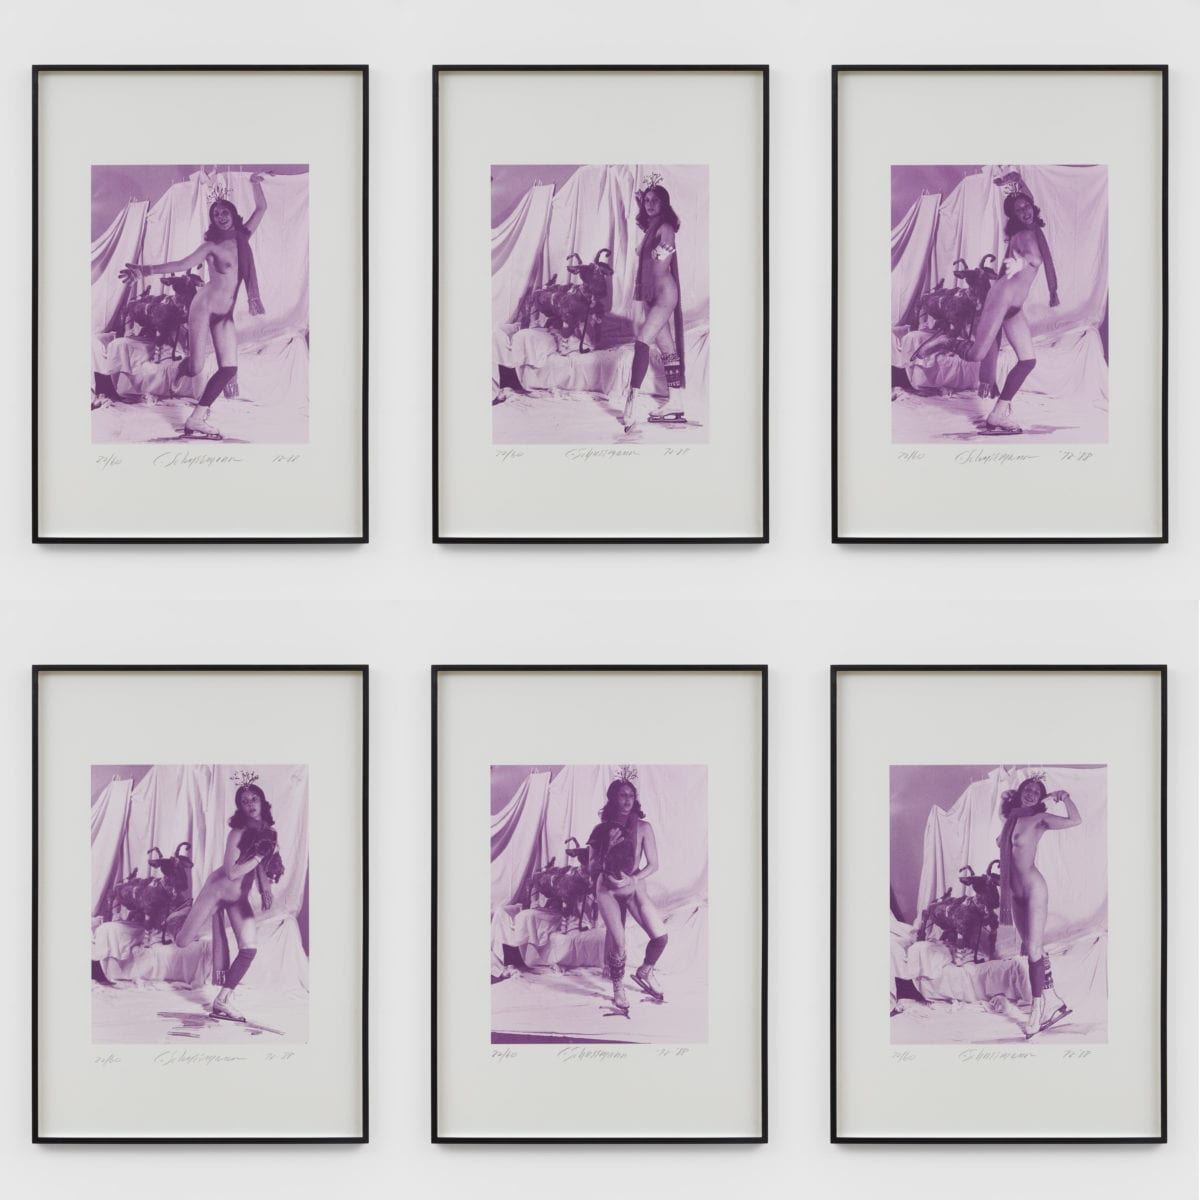 Carolee Schneemann, Ice Naked Skating, 1972/1988© The Artist; Courtesy Richard Saltoun Gallery, London